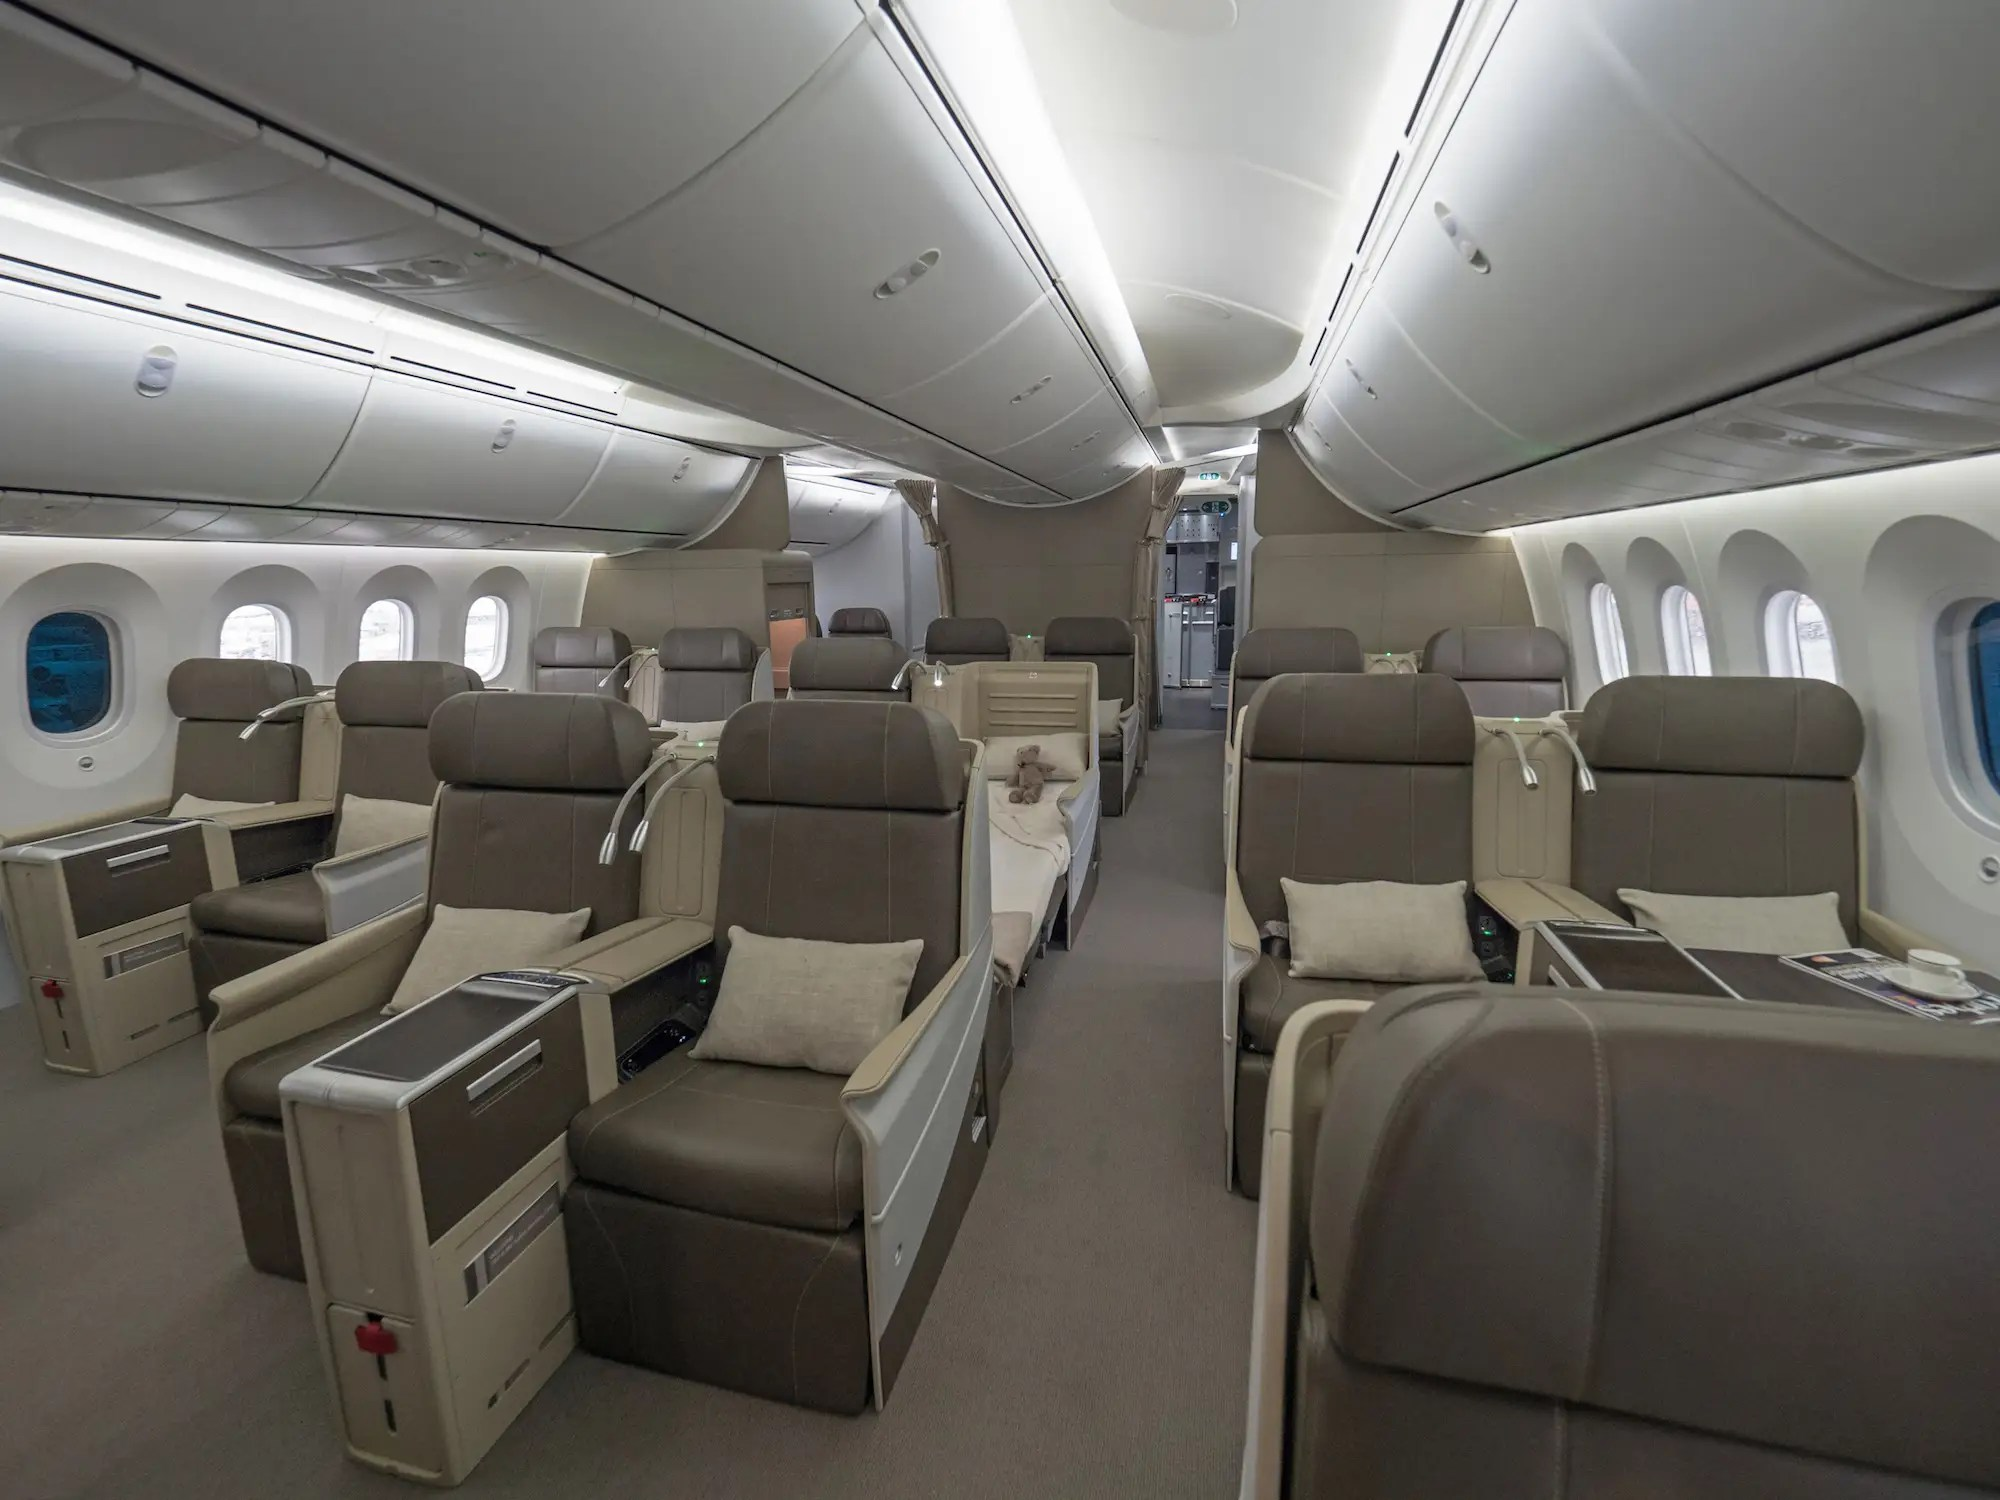 Aft of the round VIP lavatory is the guest cabin. It features 18 full-flat, first-class sleeper seats. Behind the guest cabin is a row of six premium economy seats for the staff.